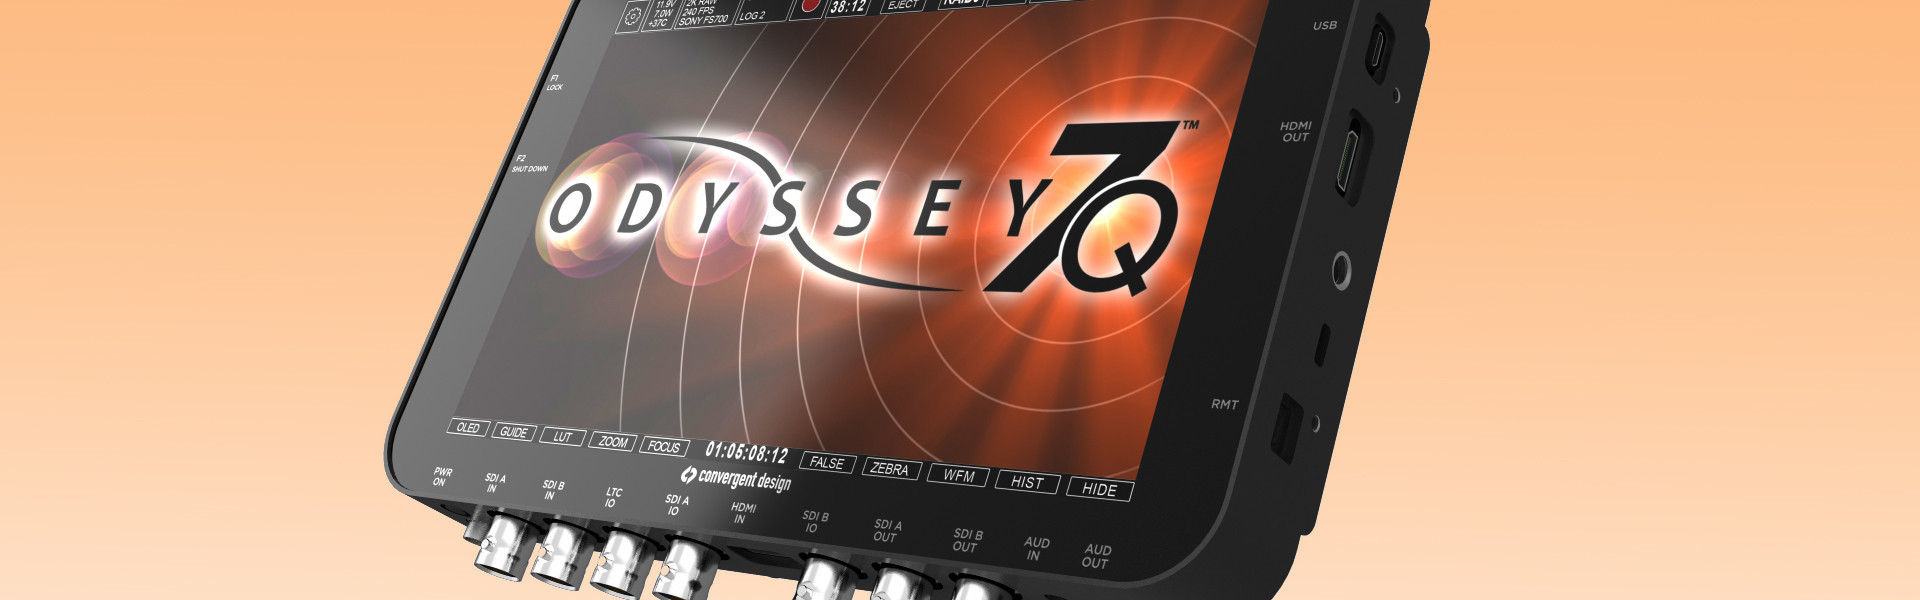 Header image for article Convergent Design Odyssey7Q+ Updates